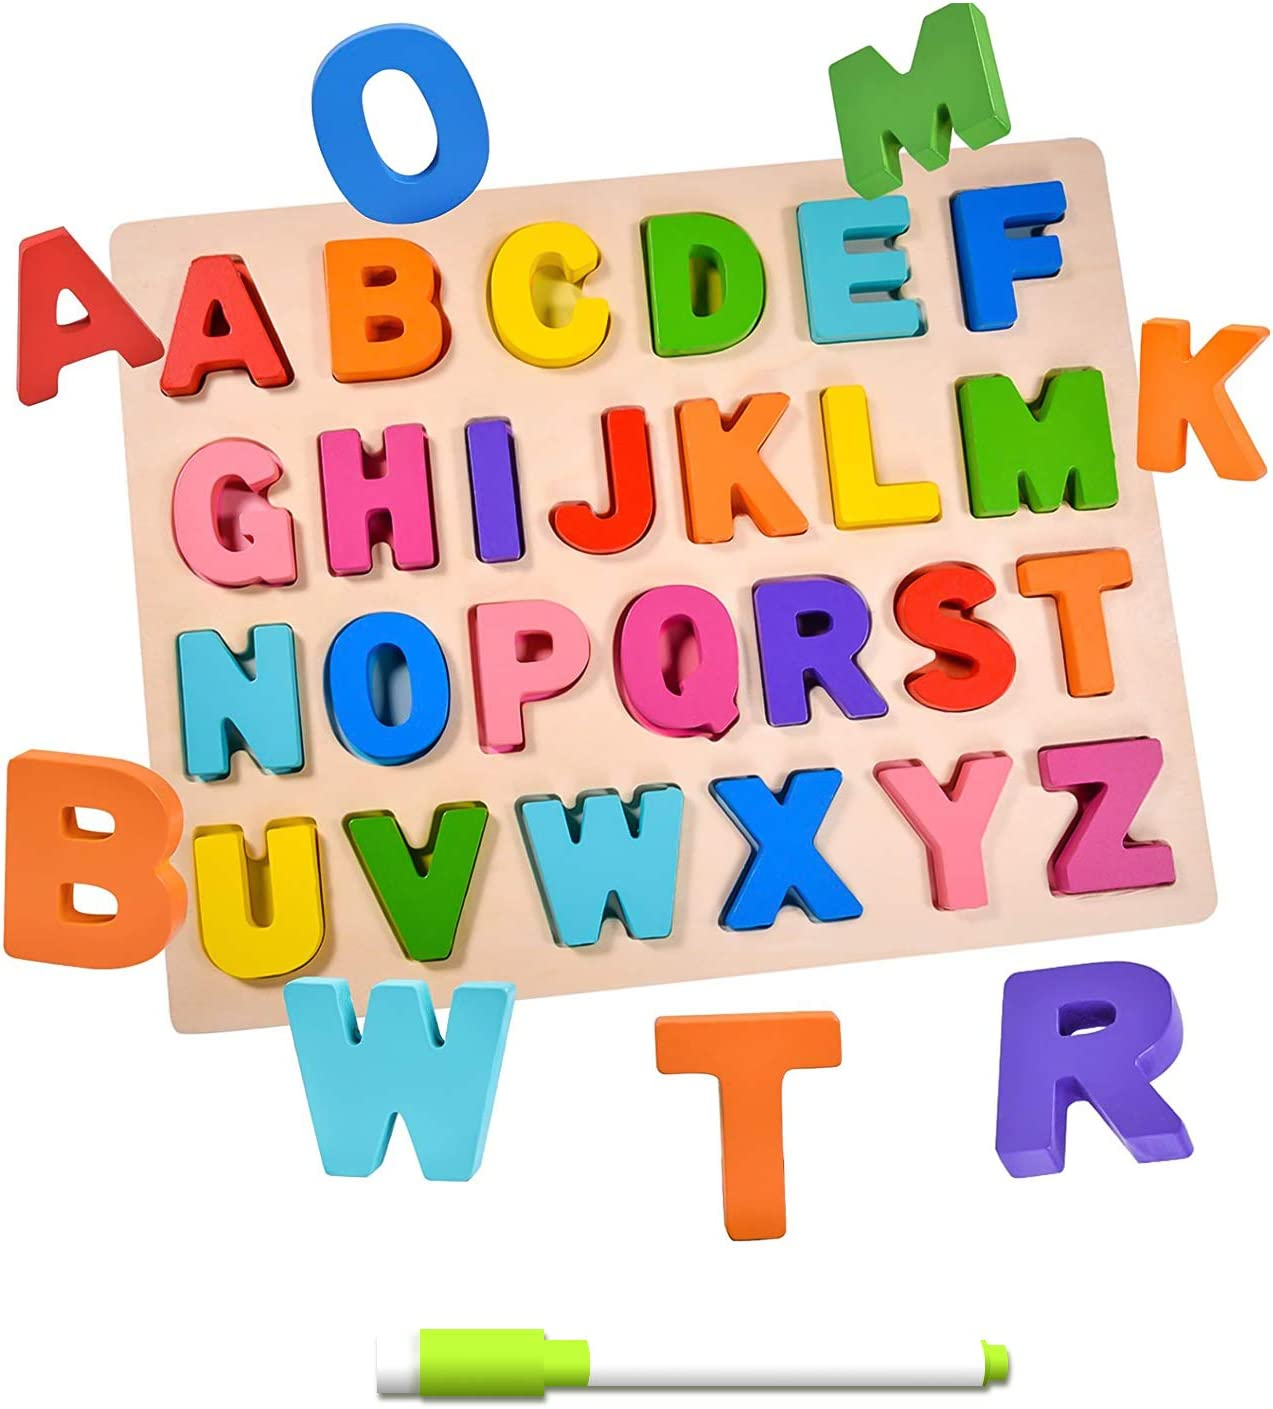 Wooden Puzzles for Toddlers, Wooden Alphabet Puzzles for Toddlers, ABC Wooden Puzzles, Educational Learning Puzzle for Kids Girls and Boys Gifts (Alphabet): Toys & Games